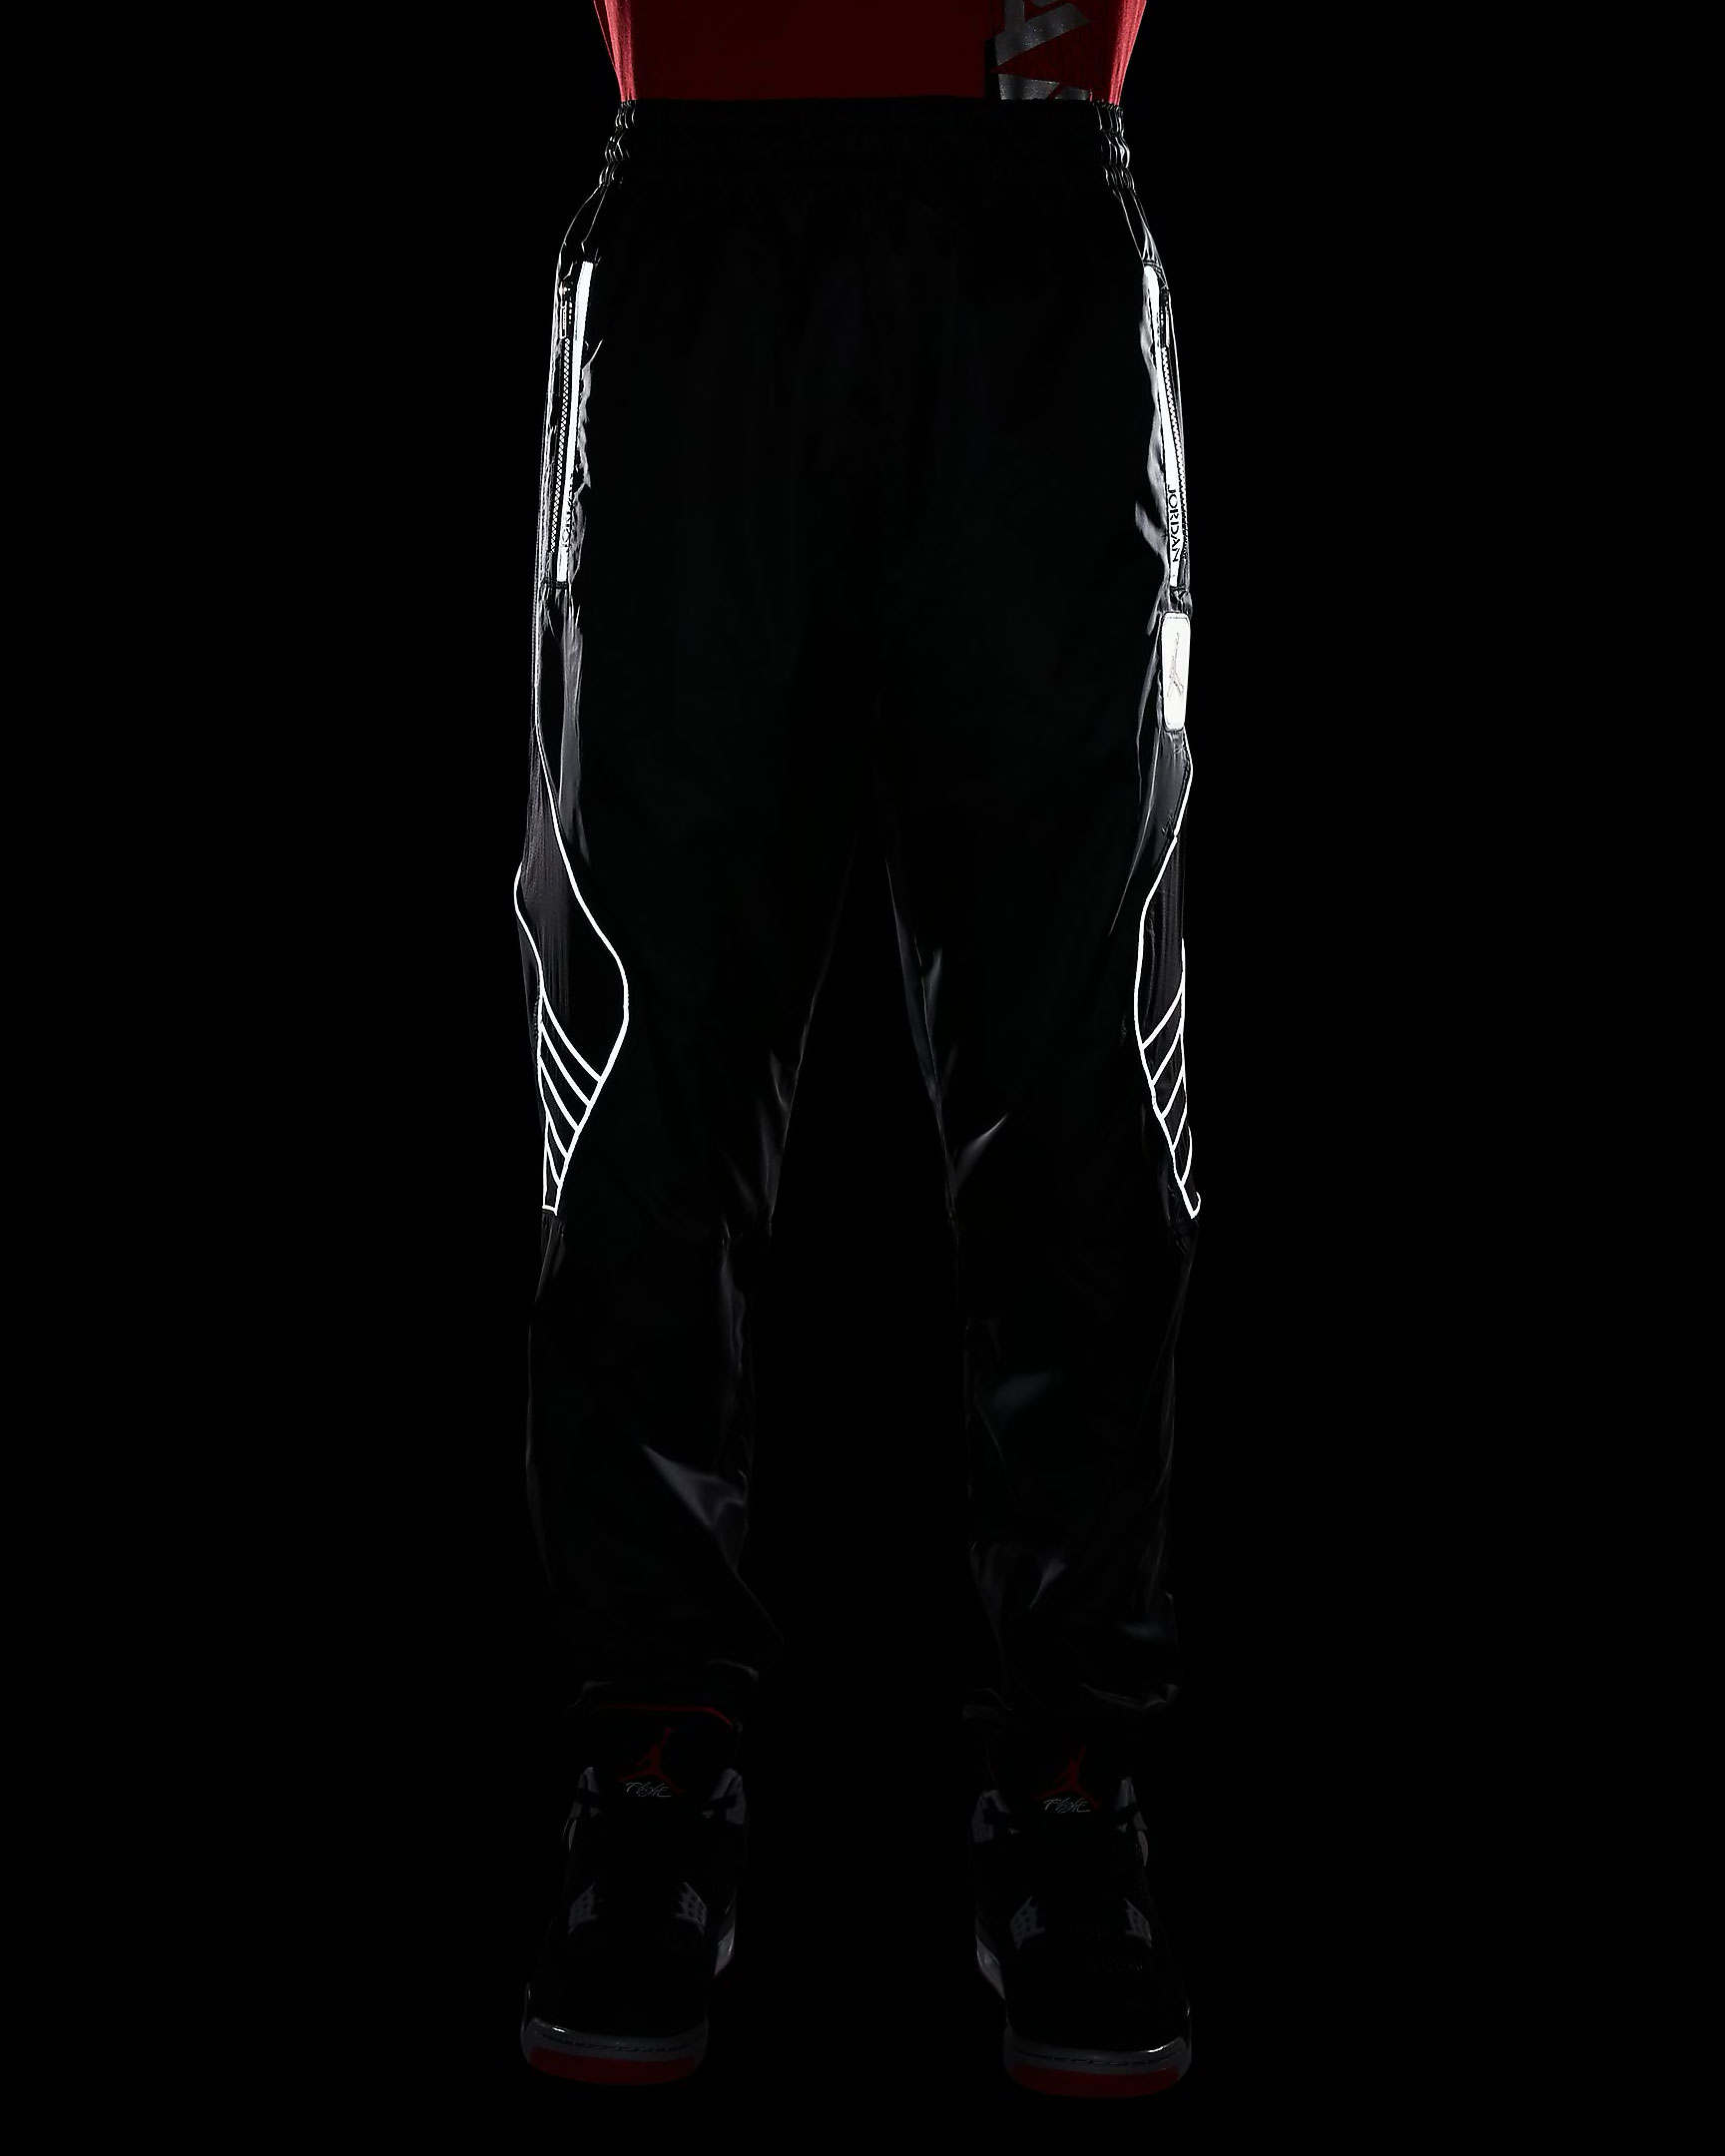 air-jordan-5-fire-red-silver-tongue-reflective-pants-9